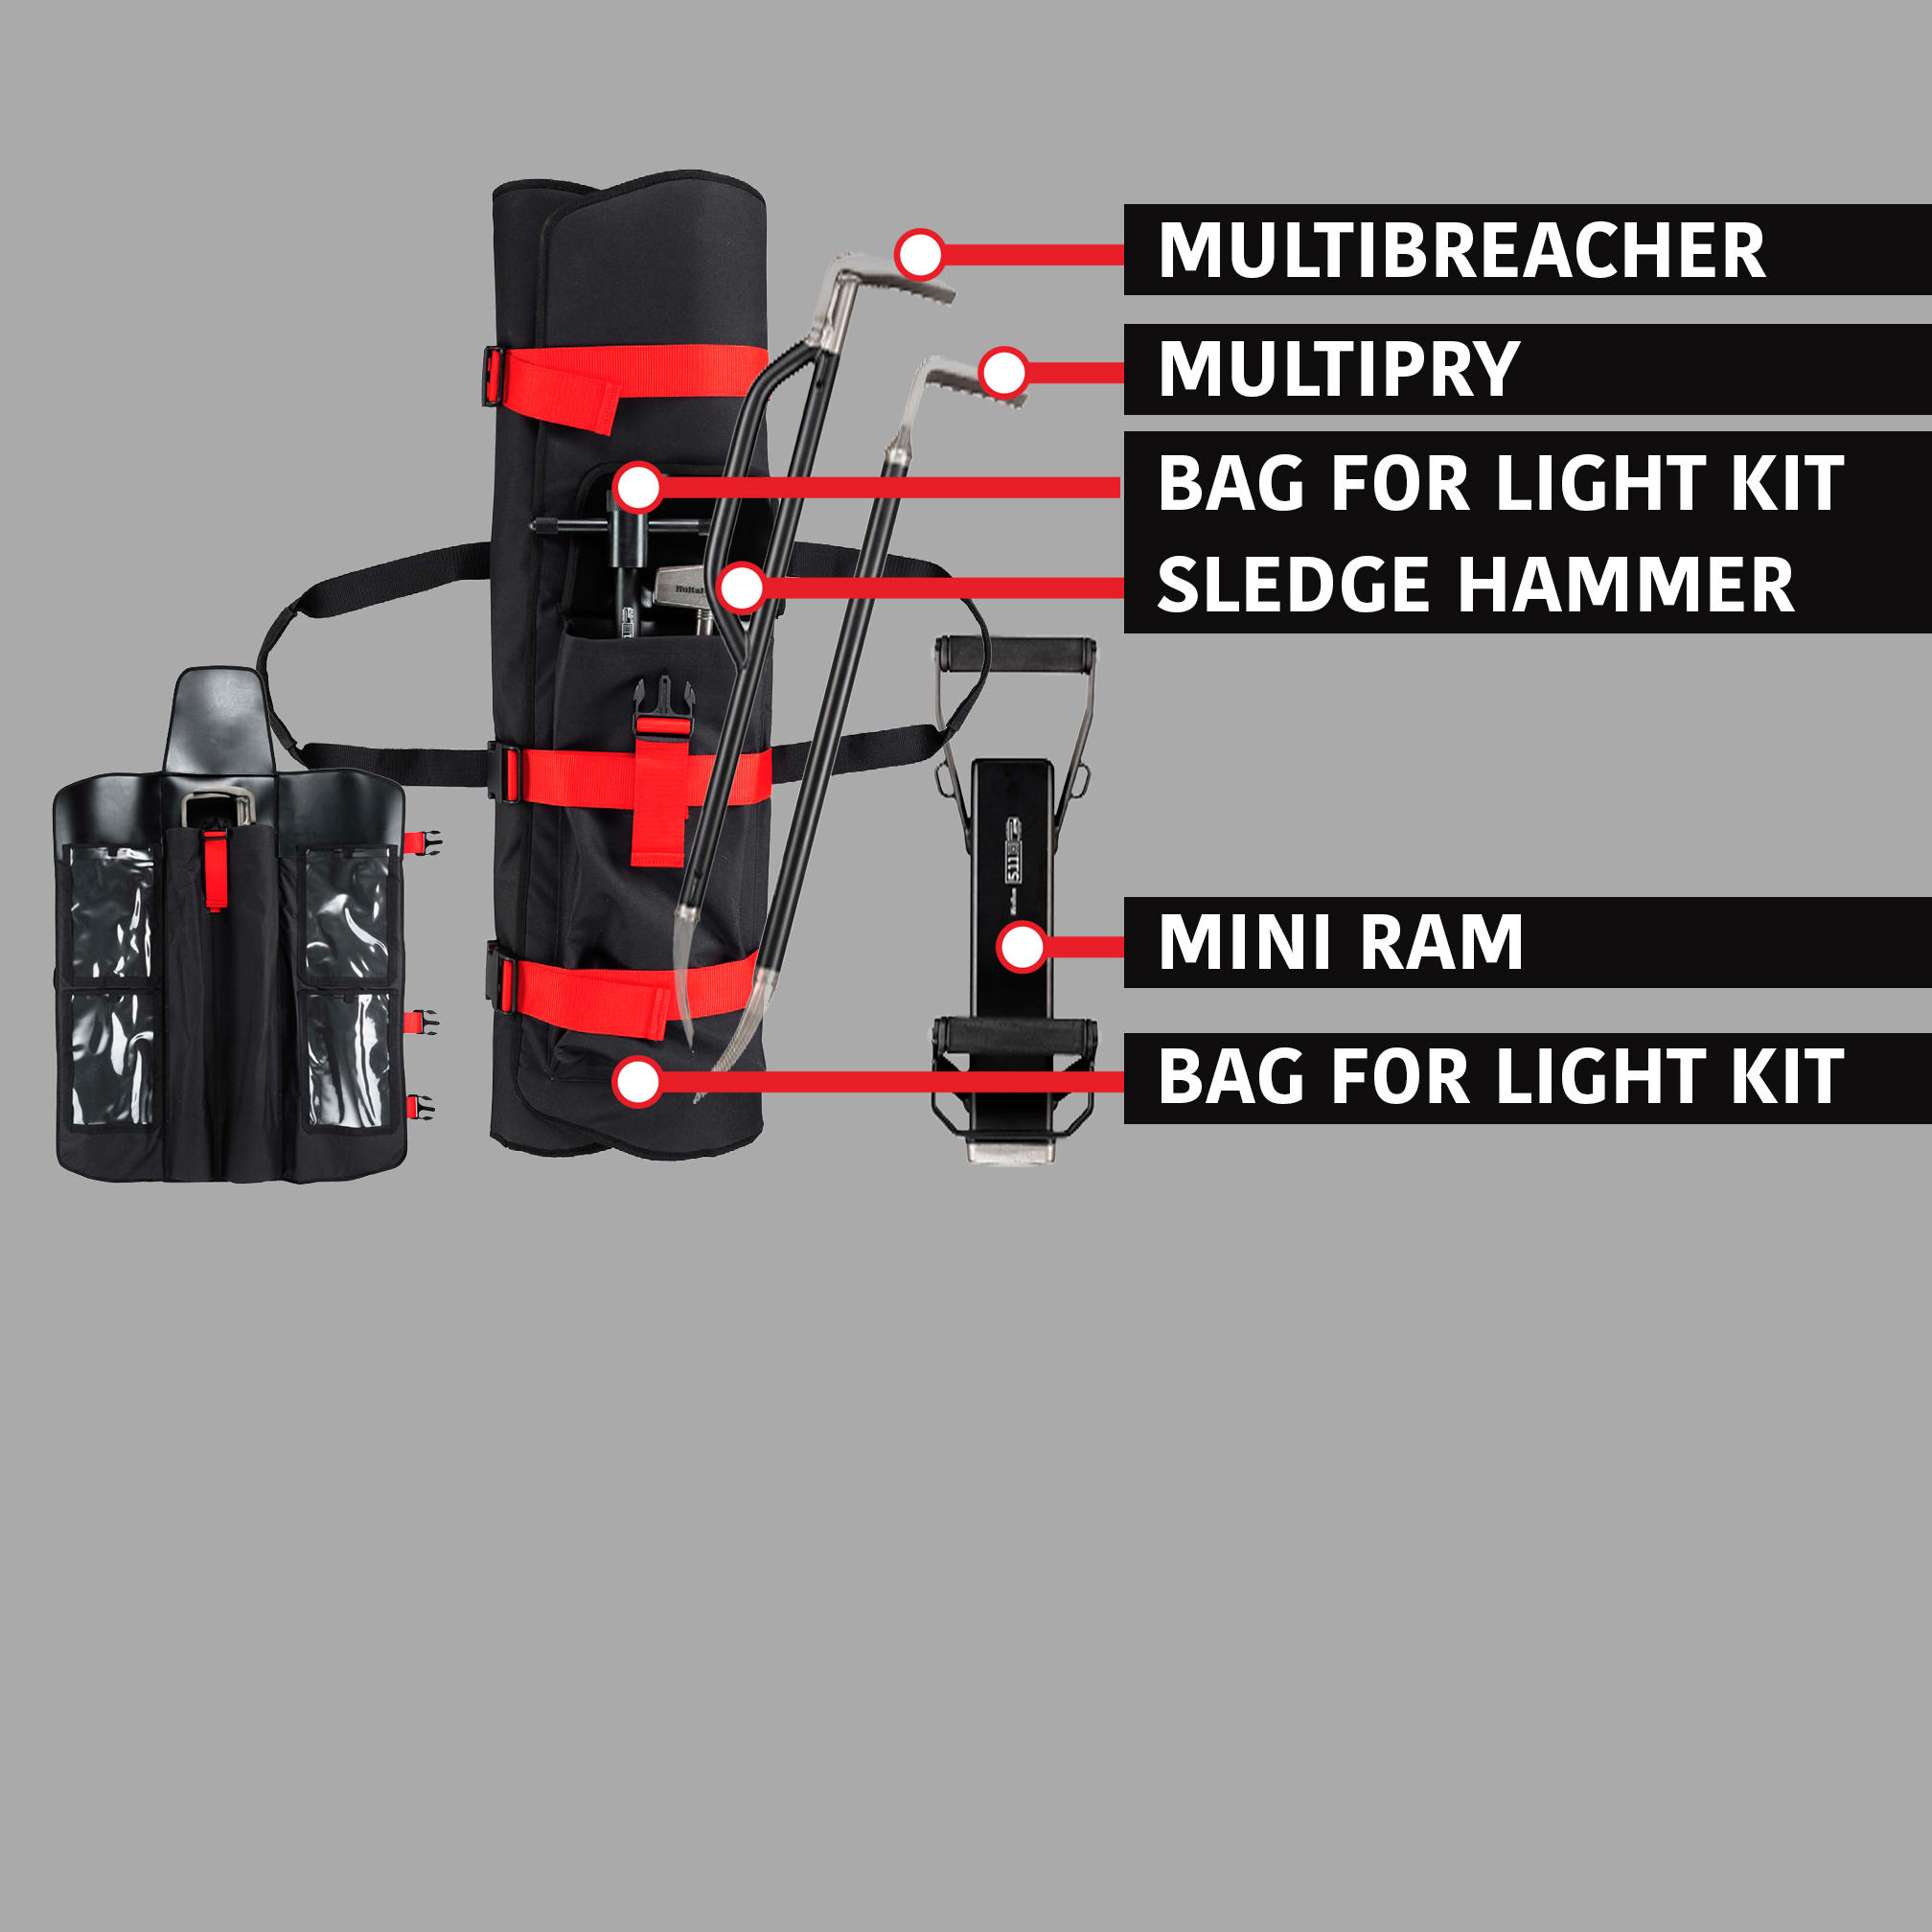 Fire Fighting Kit Right Image